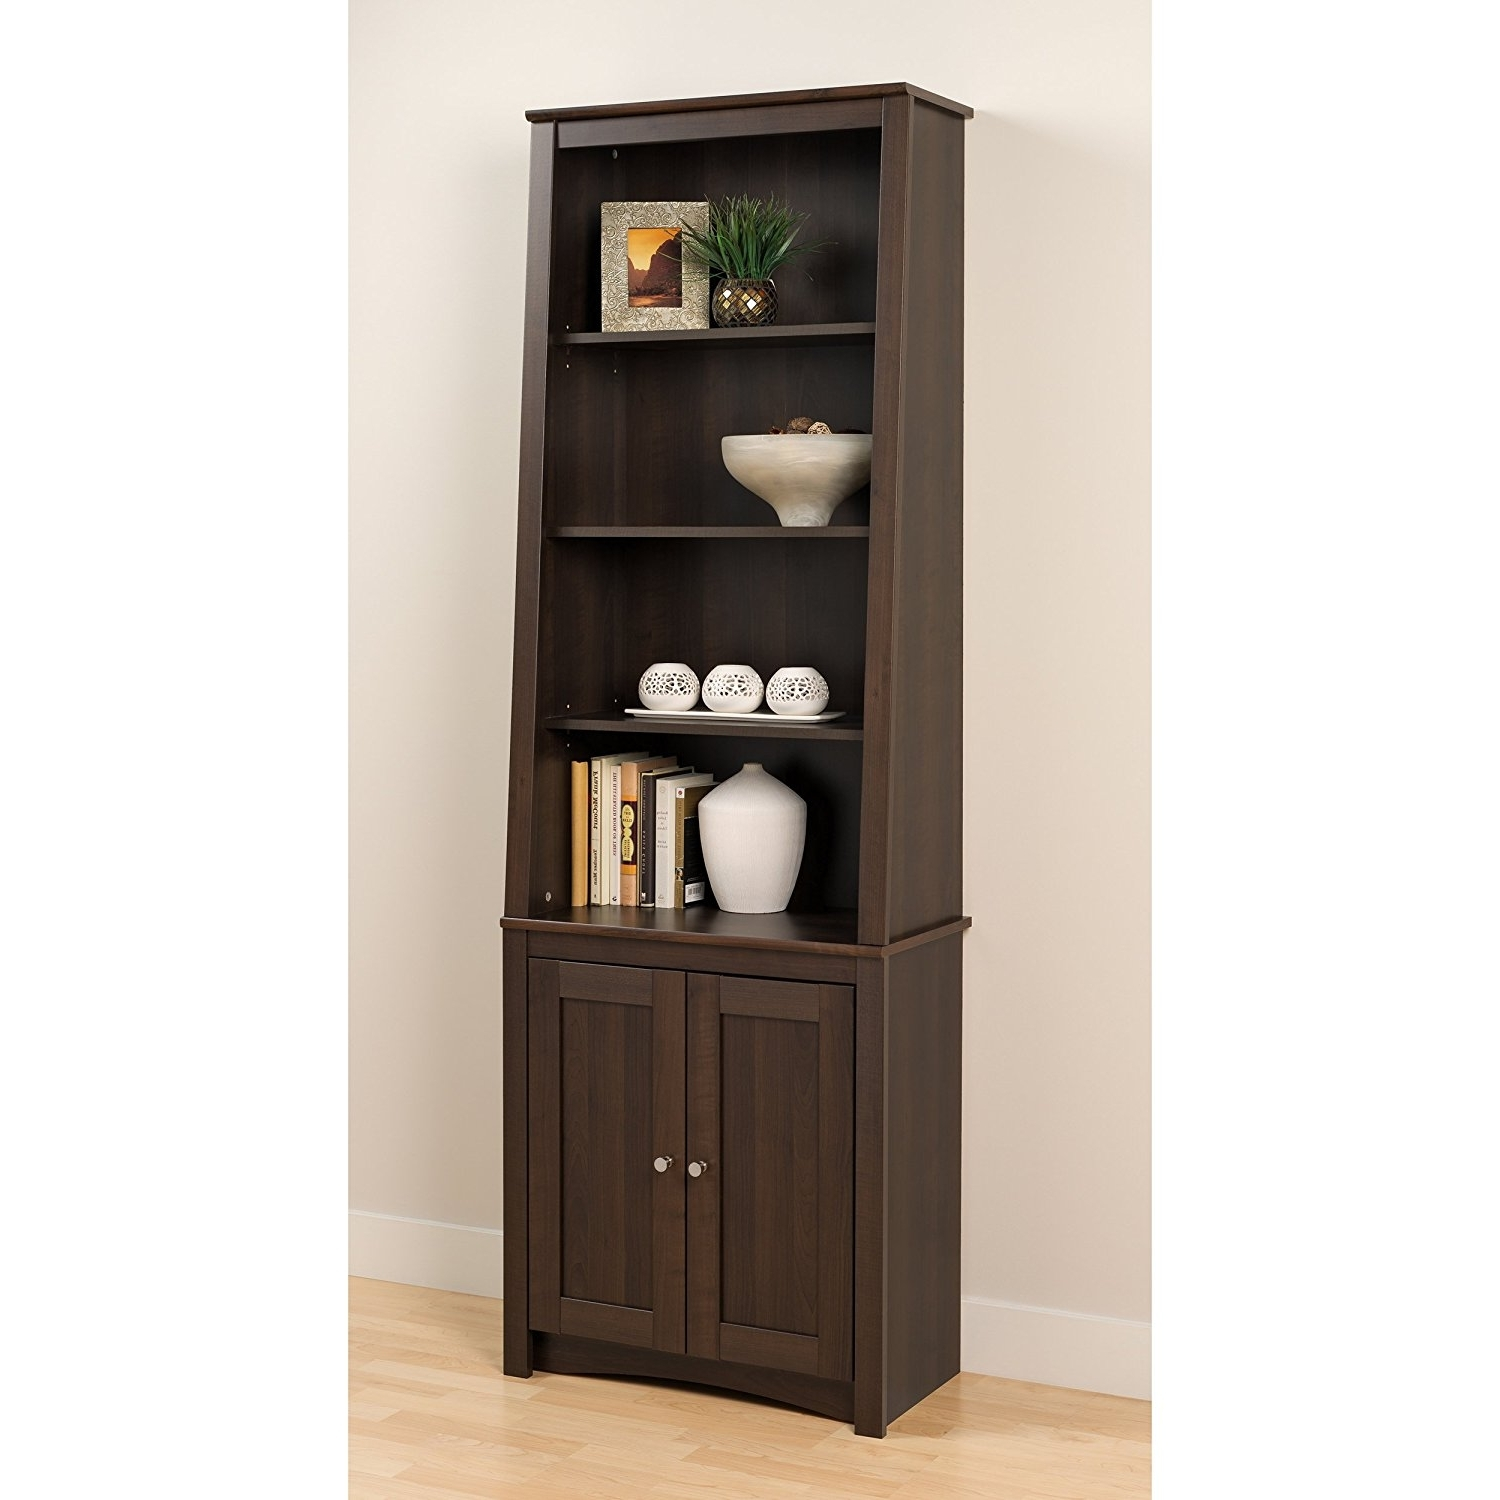 Well Known Mainstays 5 Shelf Bookcases In Amazon: Espresso Tall Slant Back Bookcase With 2 Shaker Doors (View 15 of 15)